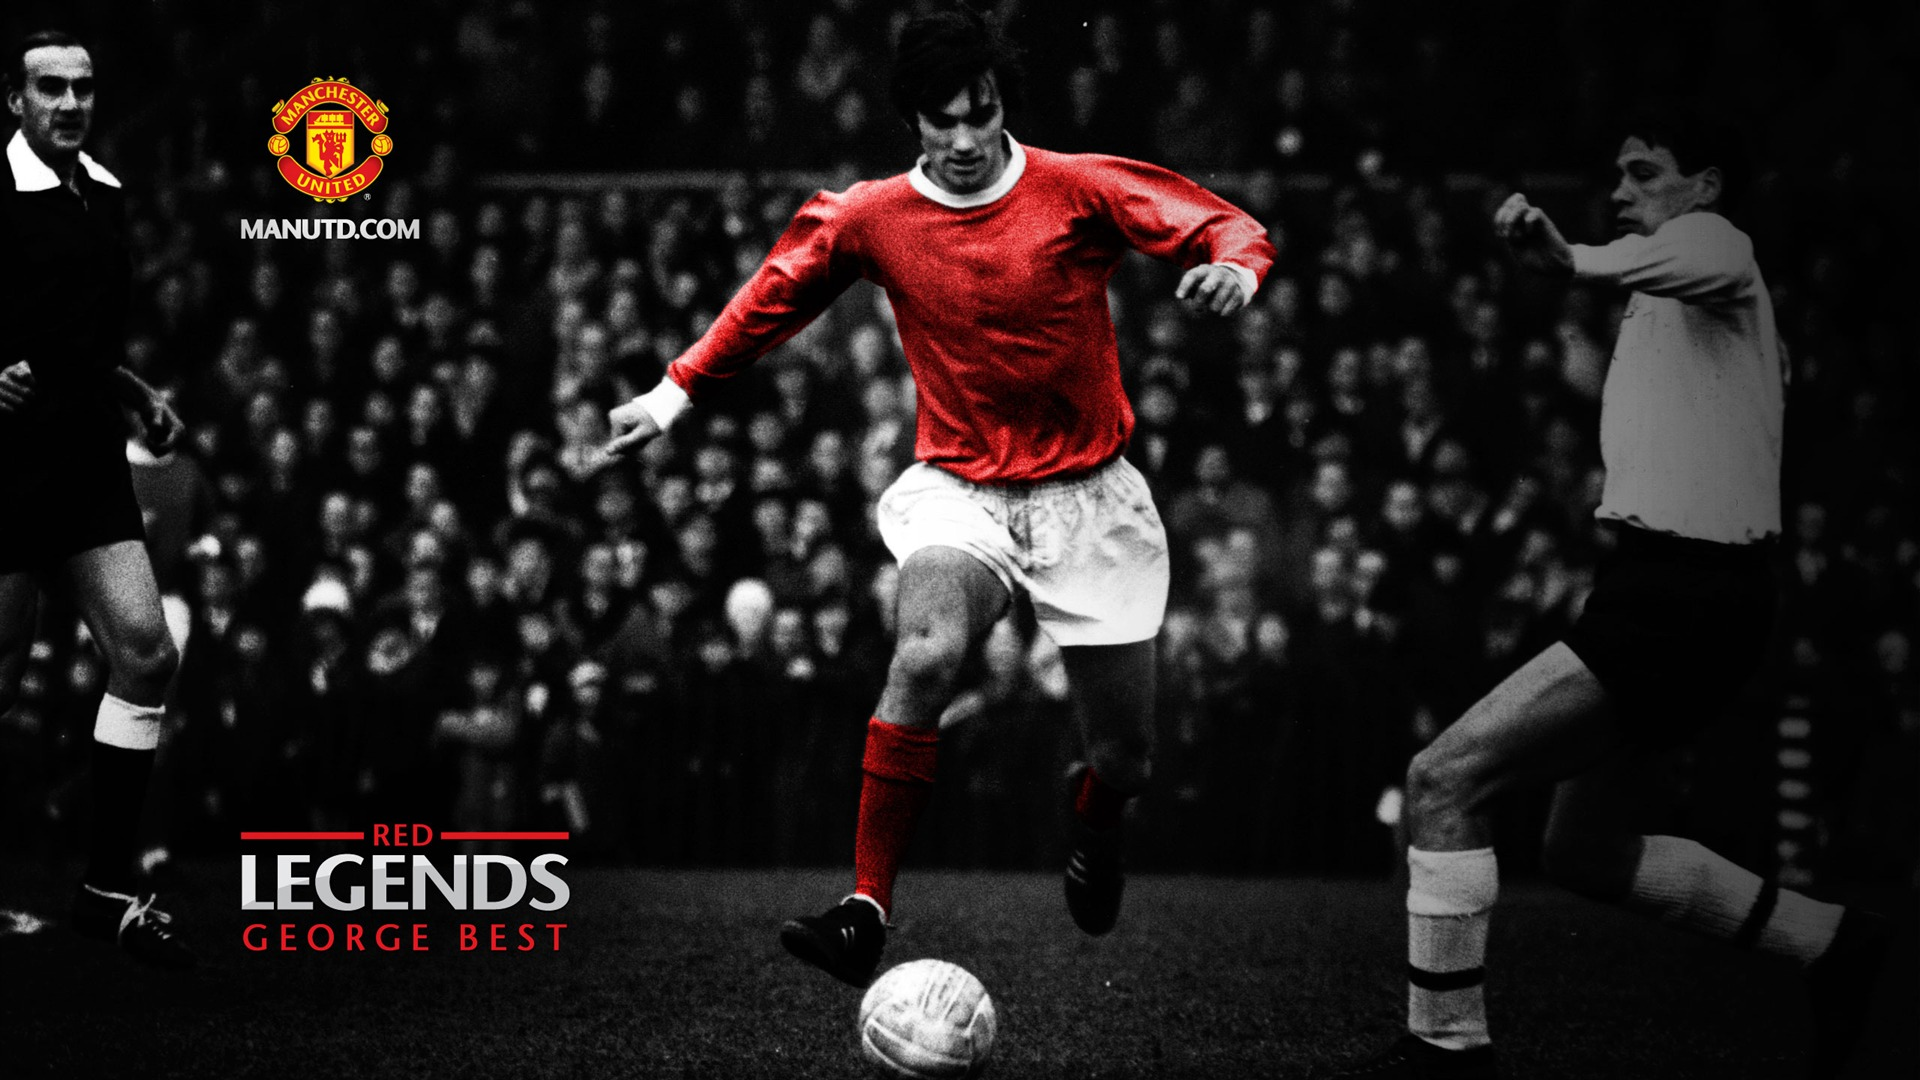 George Best Red Legends Manchester United Wallpaper Preview